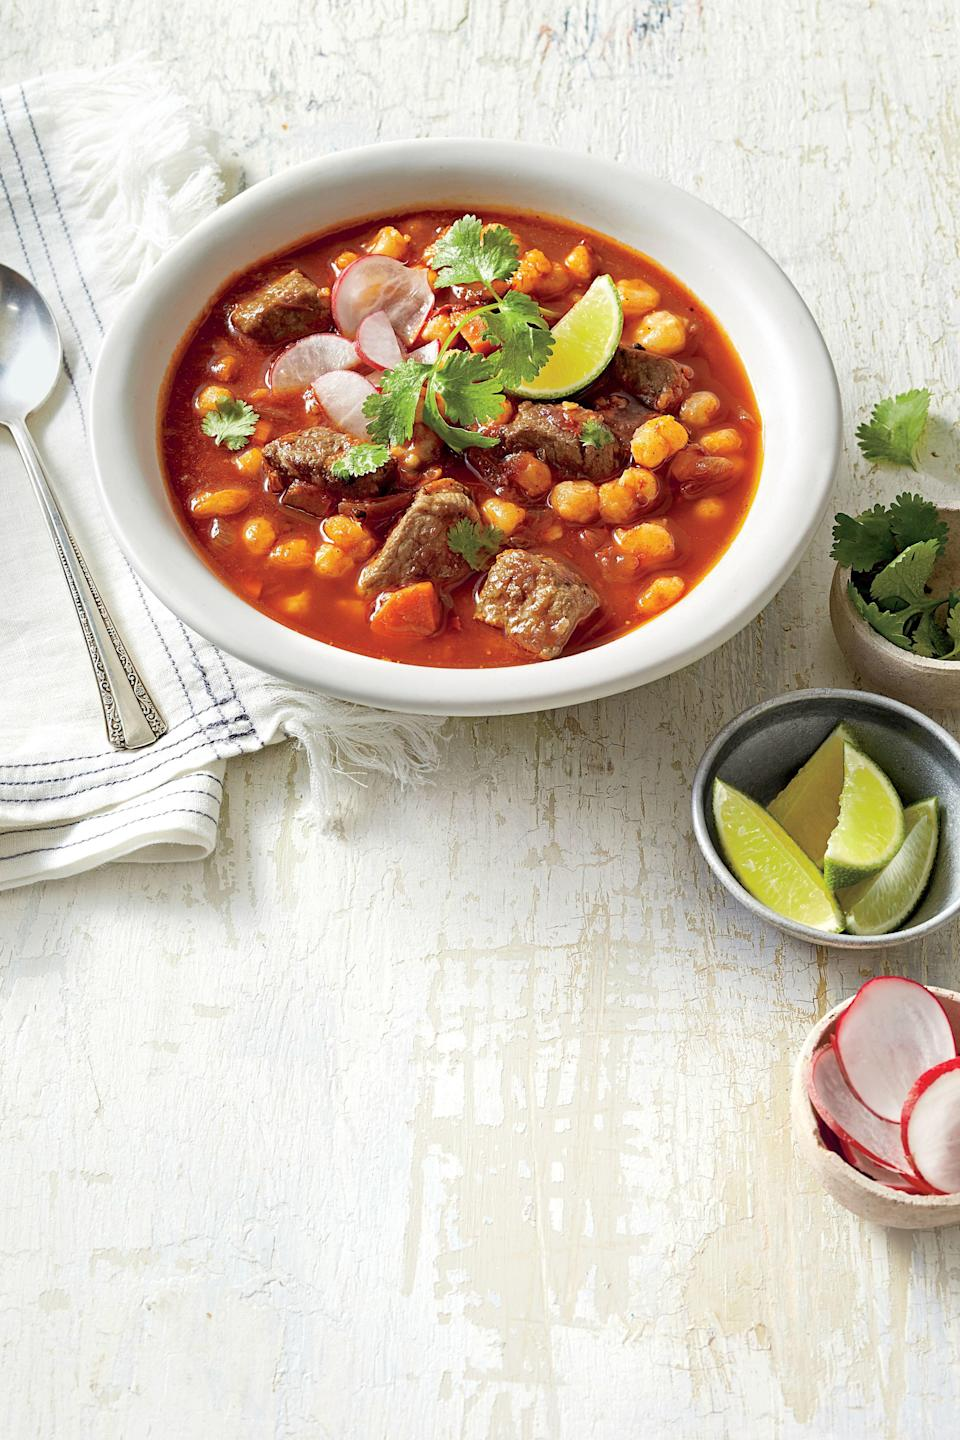 """<p><strong>Recipe: <a href=""""https://www.southernliving.com/syndication/mexican-stew"""" rel=""""nofollow noopener"""" target=""""_blank"""" data-ylk=""""slk:Mexican Stew"""" class=""""link rapid-noclick-resp"""">Mexican Stew</a></strong></p> <p>Classic posole, a delicious slow-simmered Mexican pork stew often reserved for special occasions, is typically a time-consuming labor of love. But this one gives you all the comfort and flavor of the old-world version made in your slow cooker.</p>"""